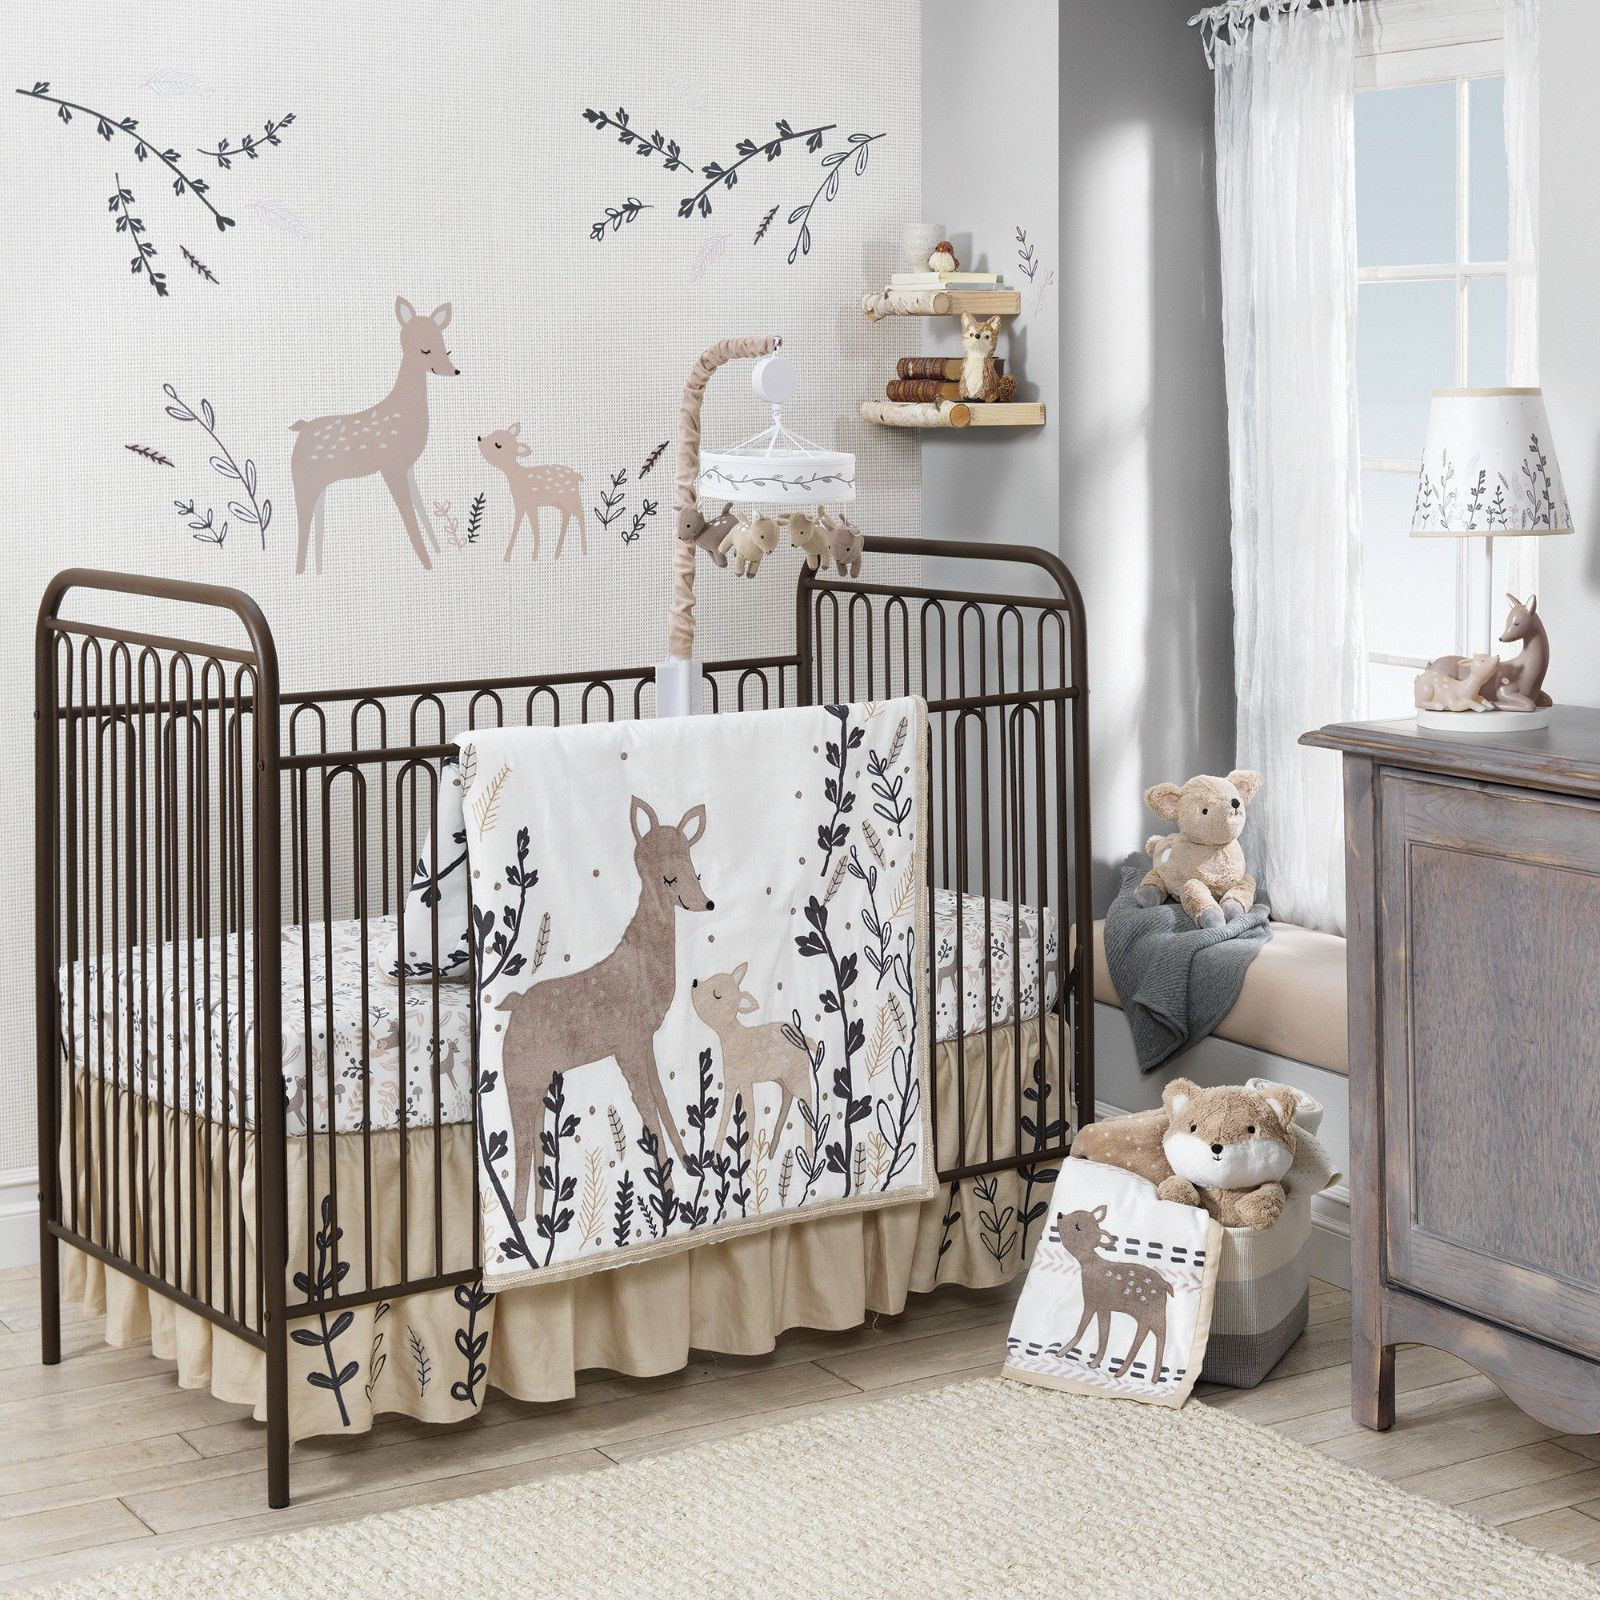 sheet designs amazon grey collection jojo mint set sweet crib toddler arrow bedding fitted baby deer and woodland com print dp for navy sets